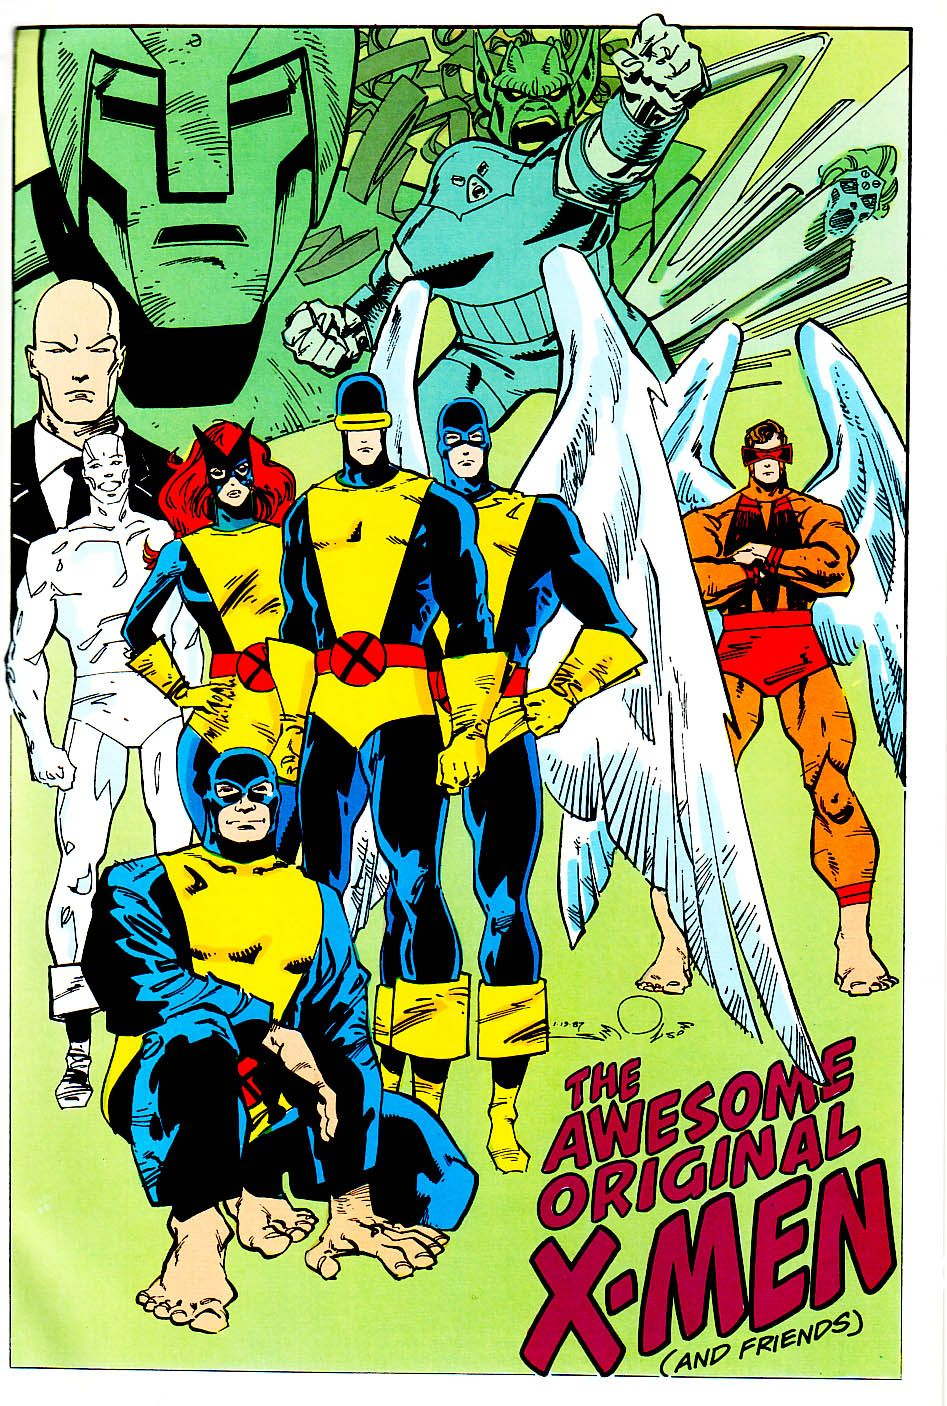 The Awesome Original X Men And Friends By Walt Simonson Comic Books Art Comics Marvel Comics Art